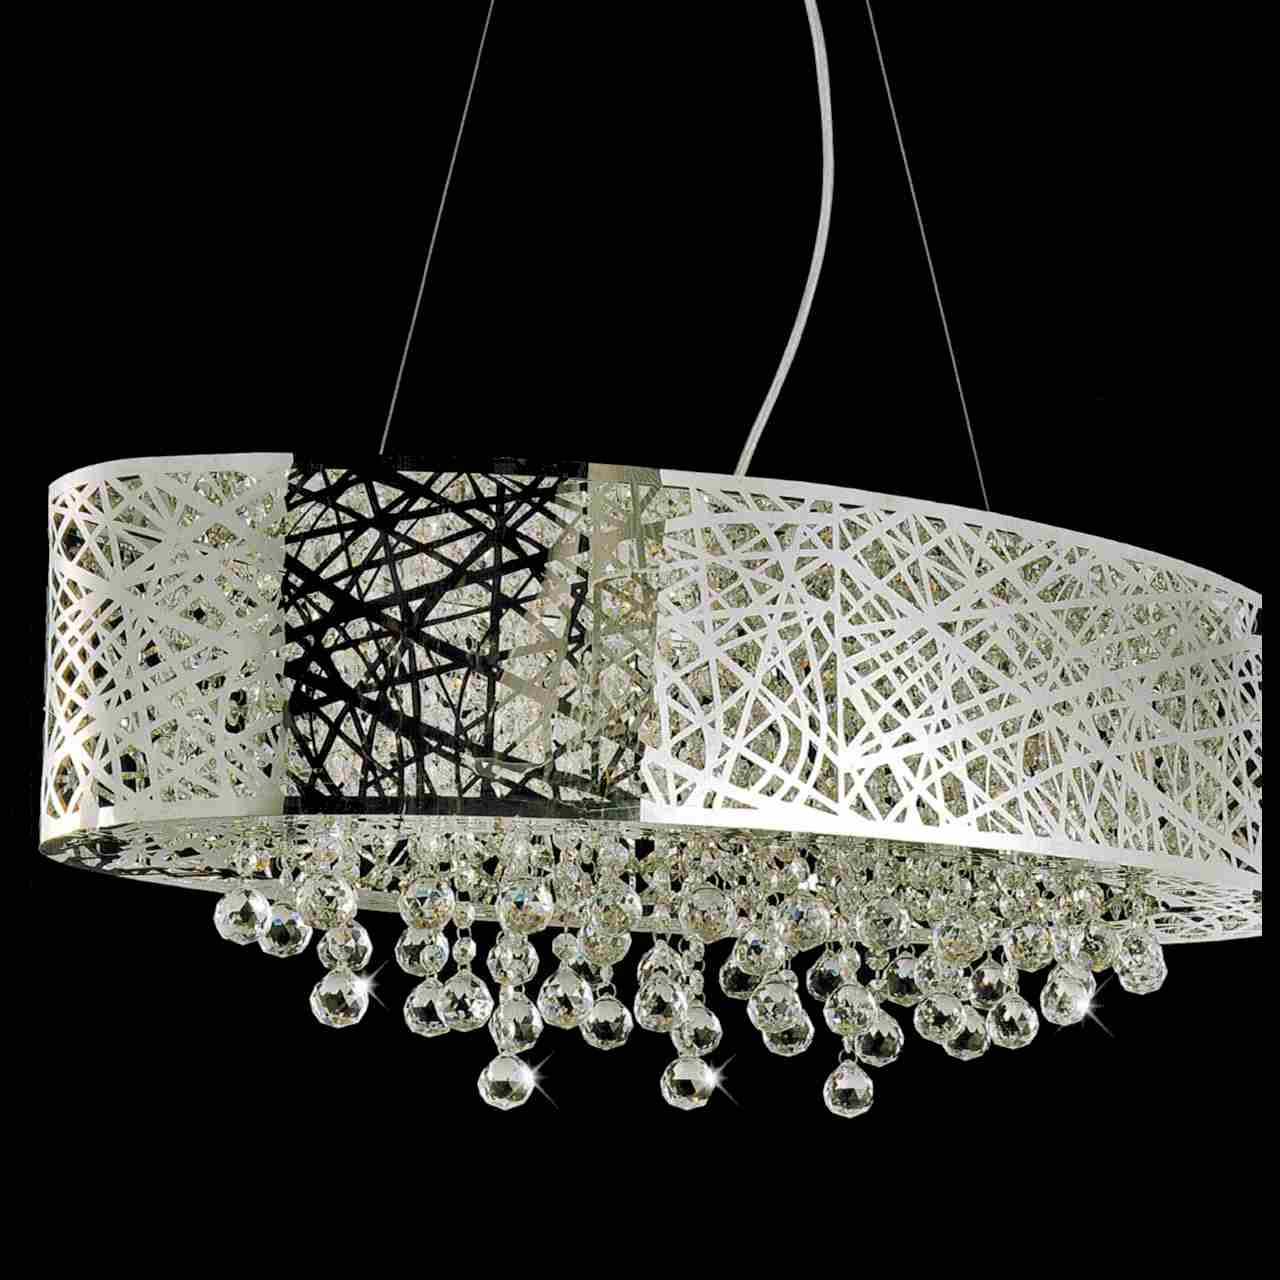 mount flush finish lighting hanging crystal or fixture ceiling chrome modern chandelier life diamond pendant